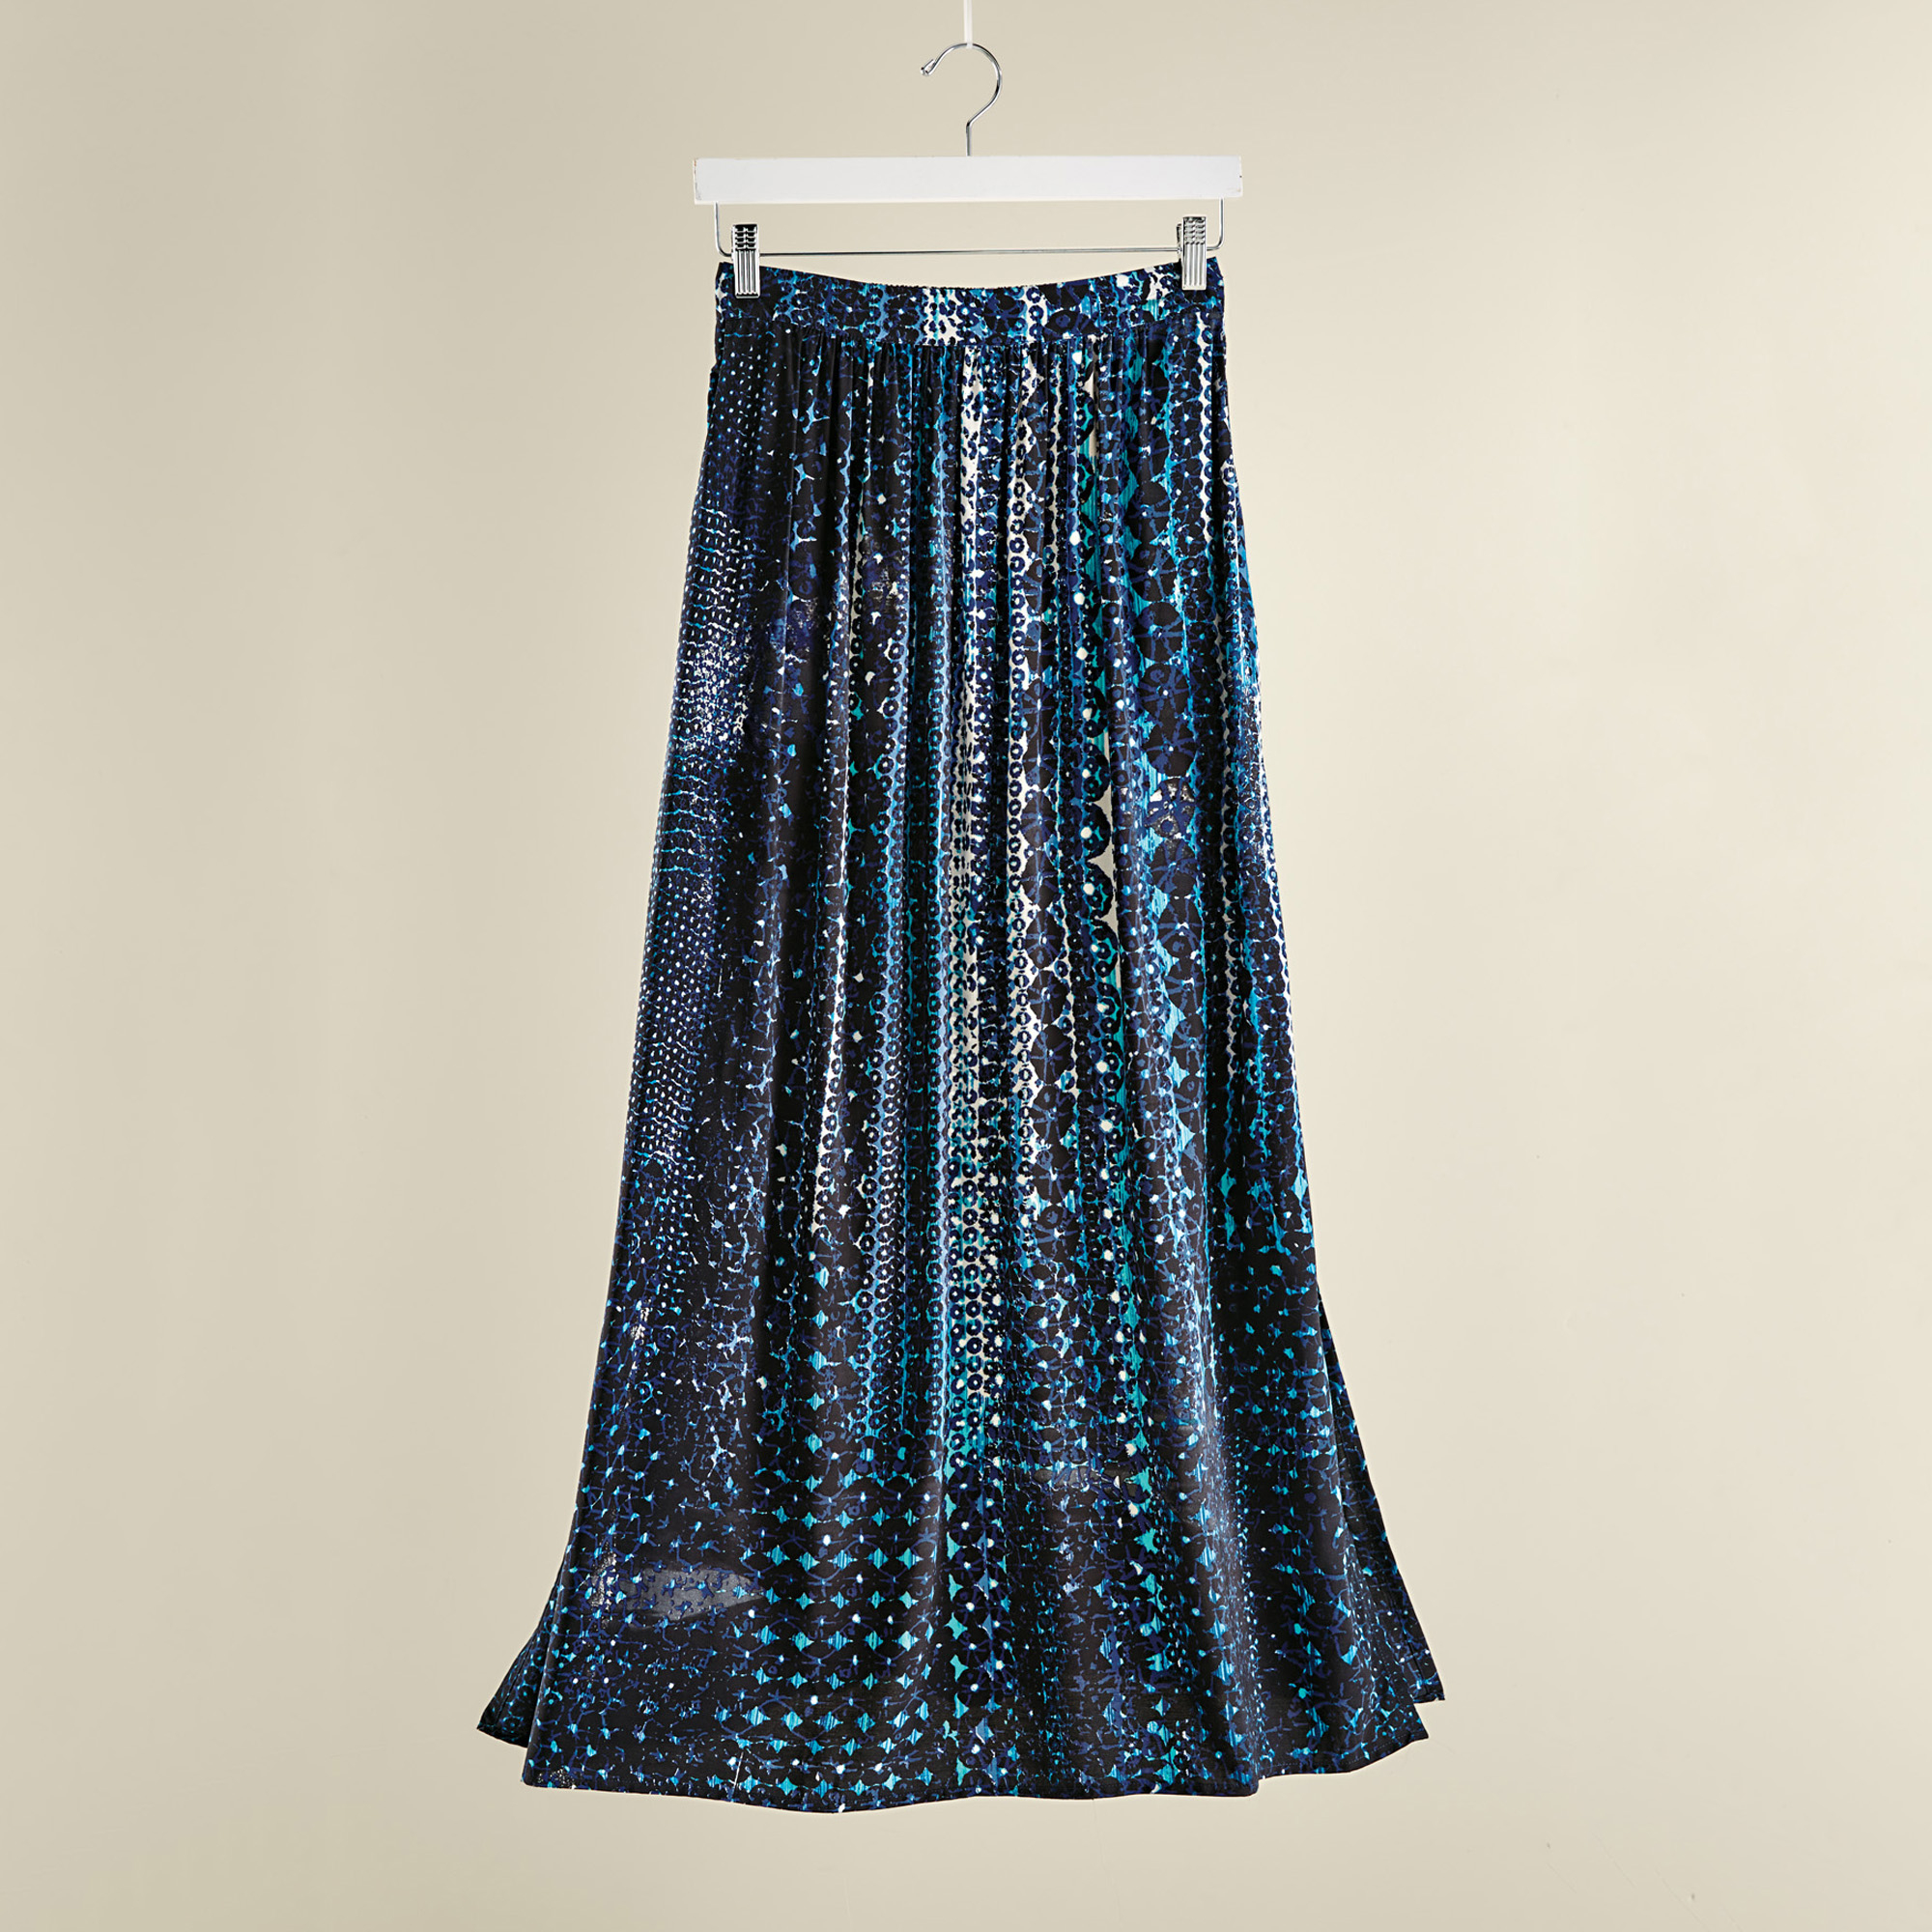 Nic + Zoe Fountain Maxi Skirt